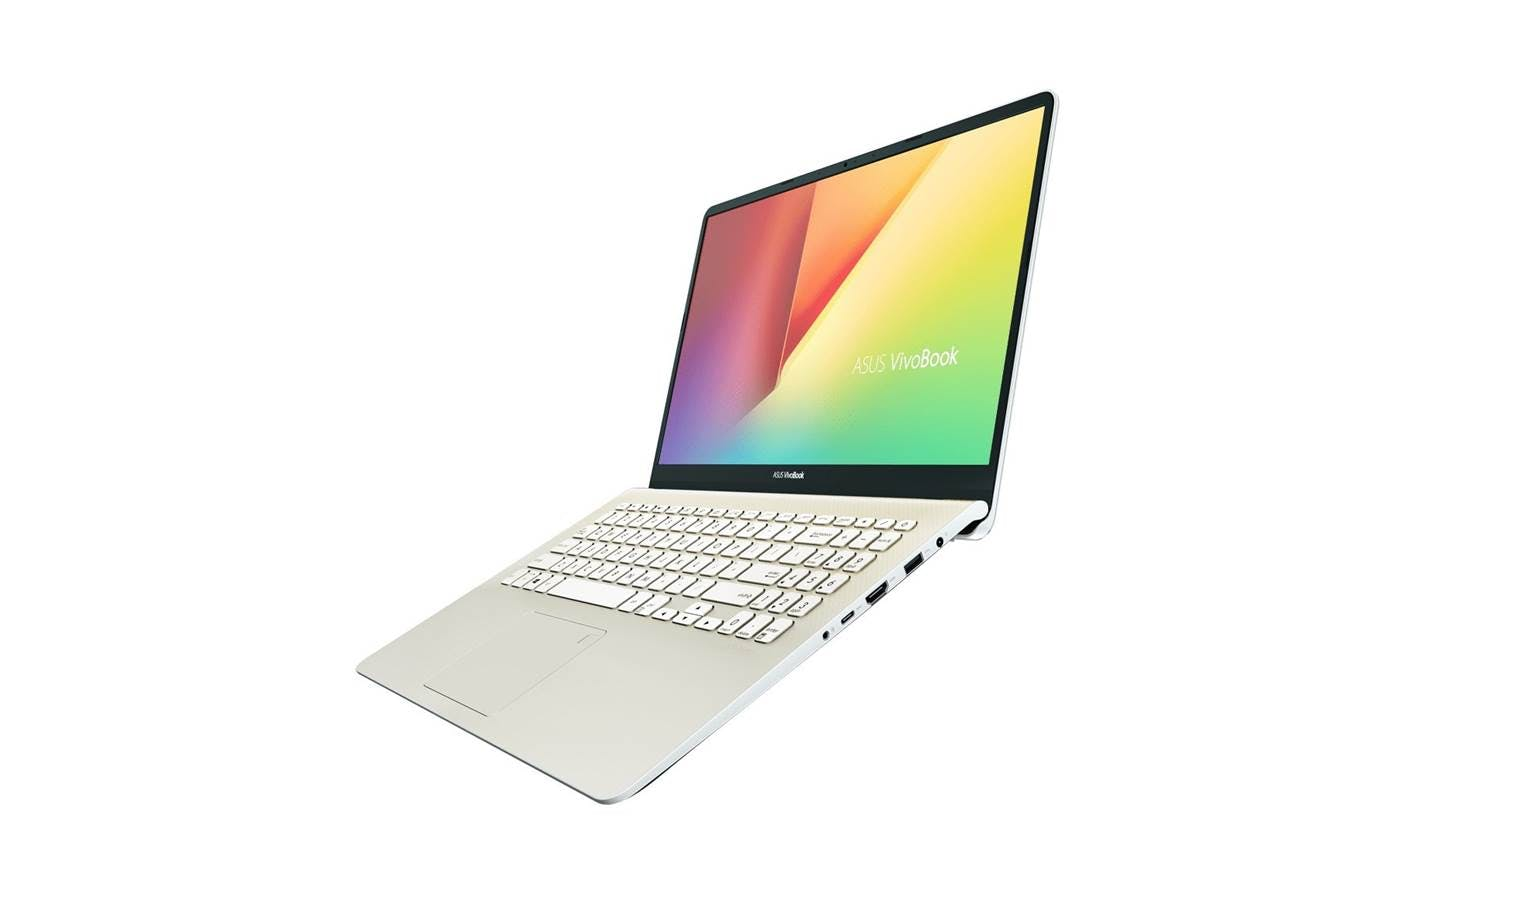 ASUS VivoBook S15 S530UN Notebook - Icicle Gold  c1384f7723